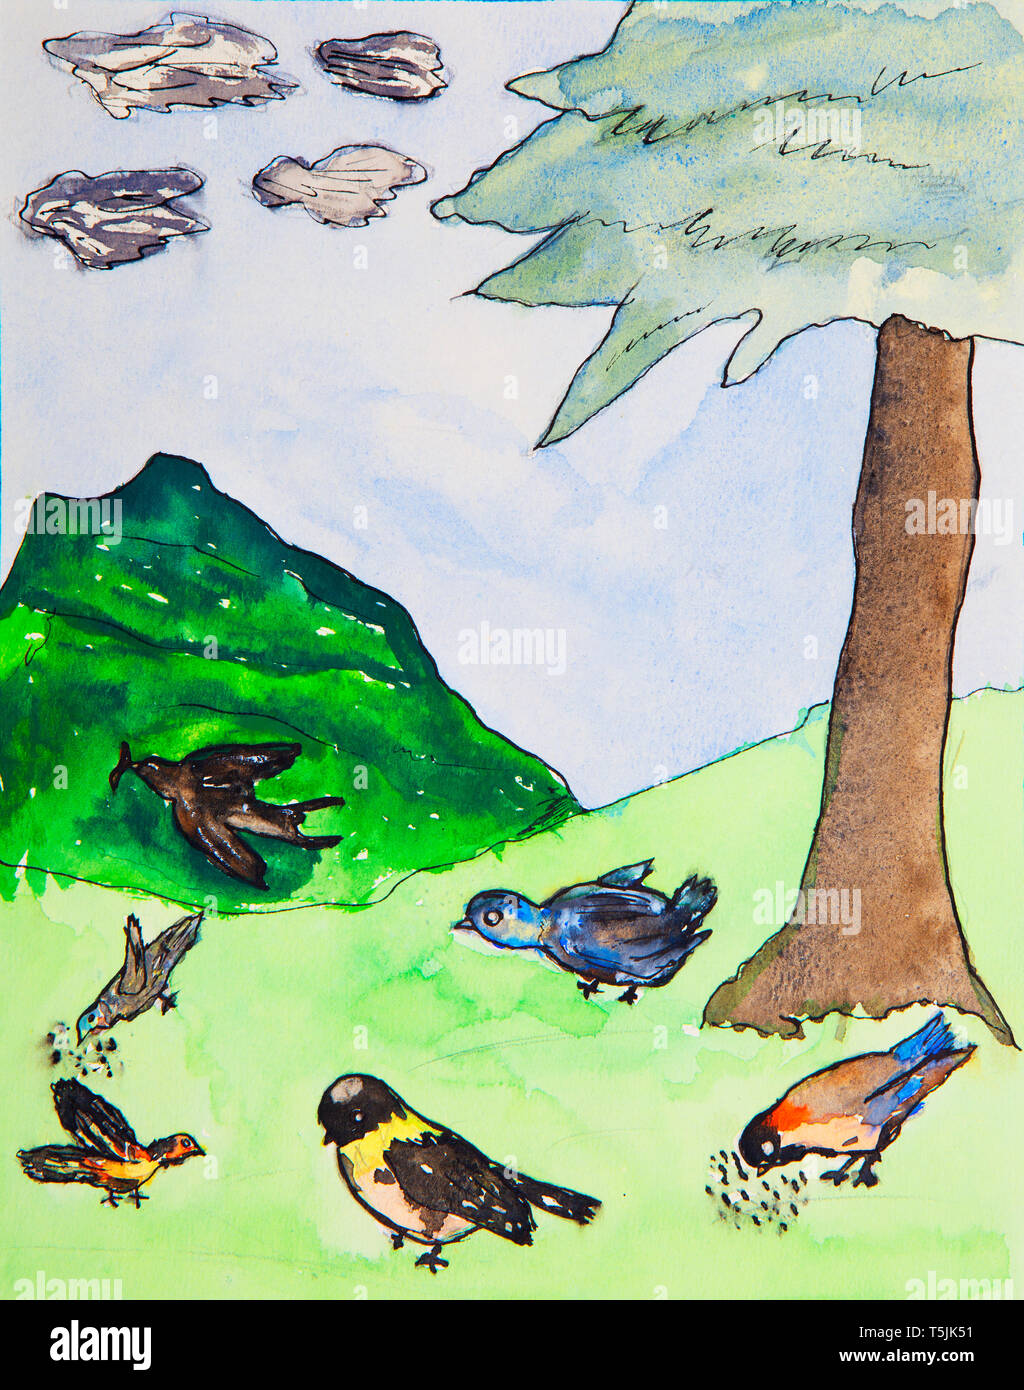 Children's painting of song birds in nature - Stock Image